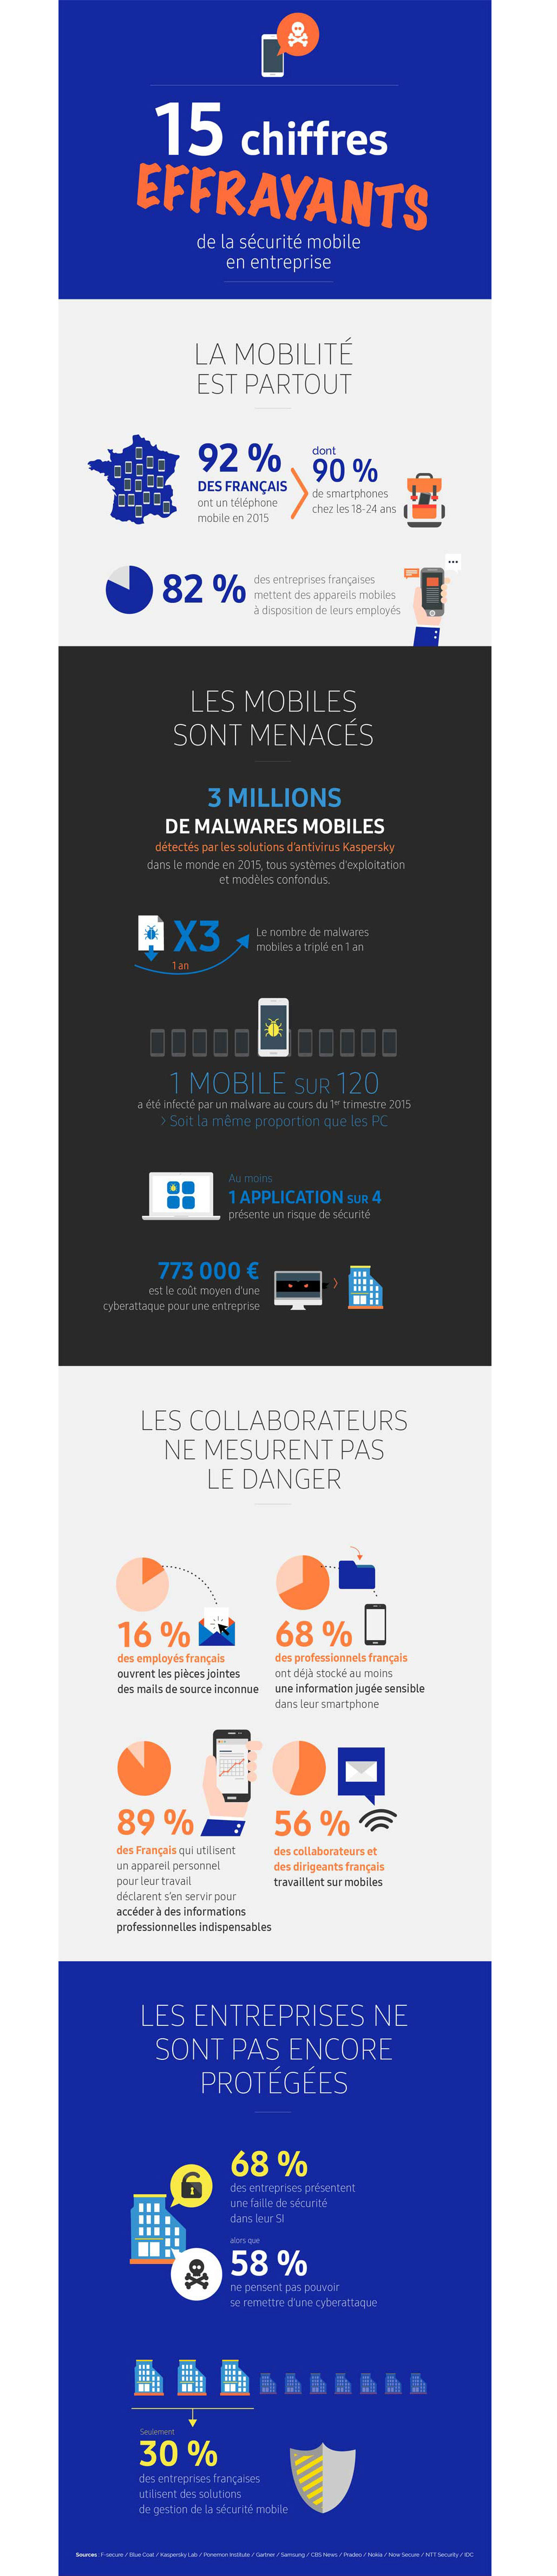 docline-xerox-infographie-securite-mobile-entreprise